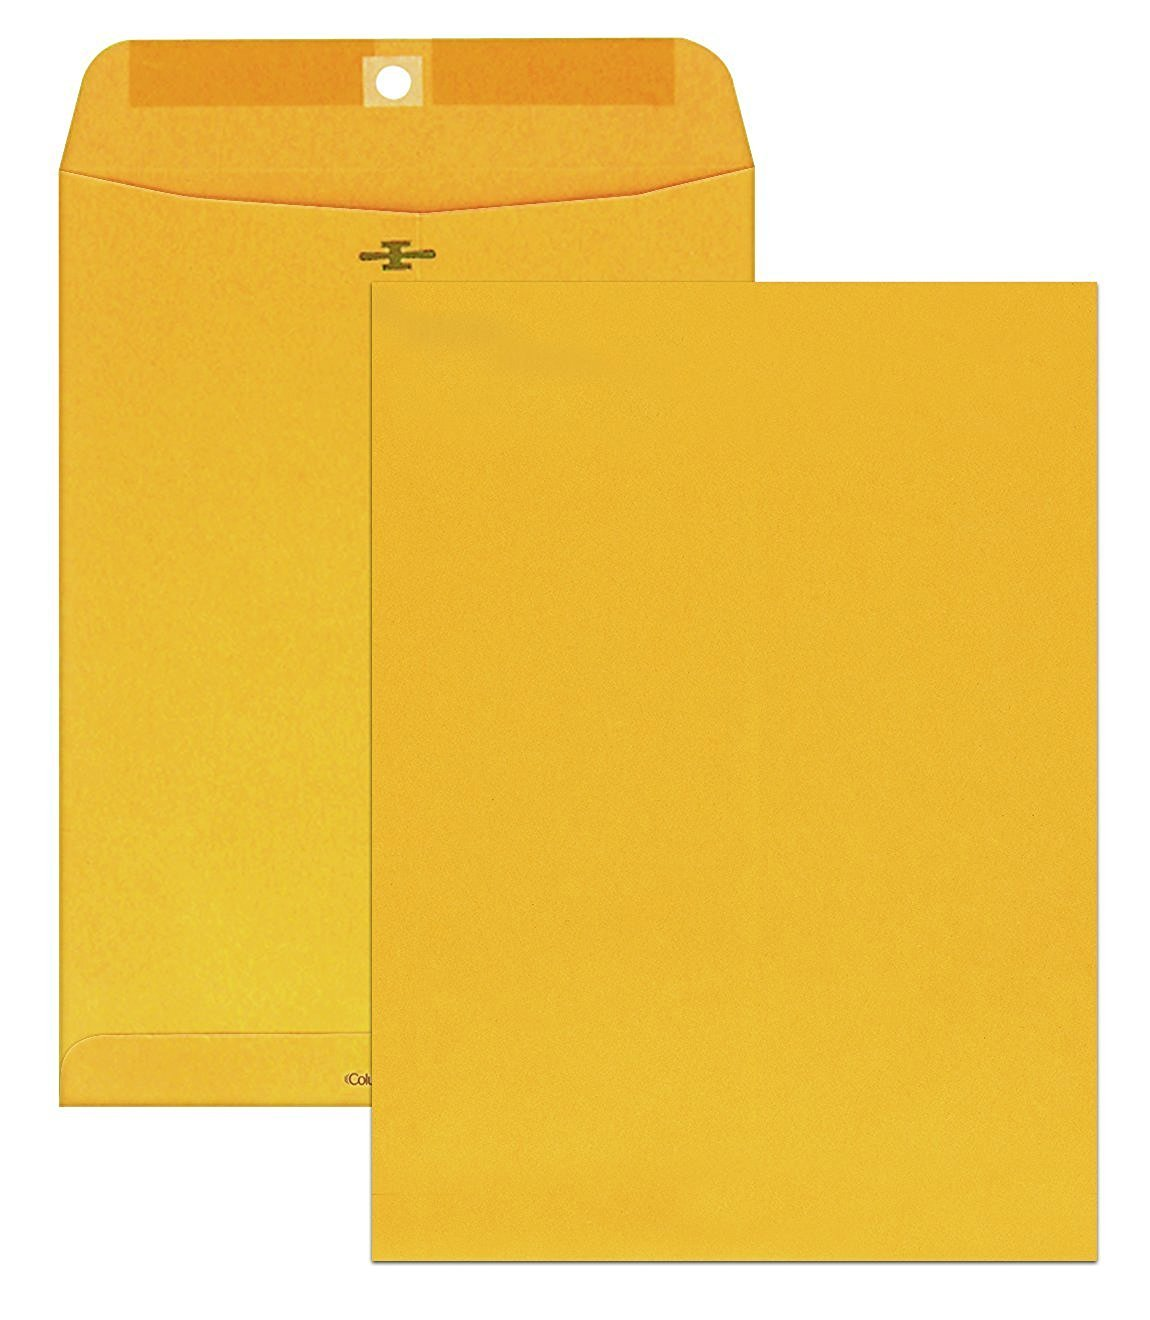 Columbian Clasp Envelopes, Brown tycUZ Kraft, Clasps, 9 x 12-Inch 100 Count (5 Pack)